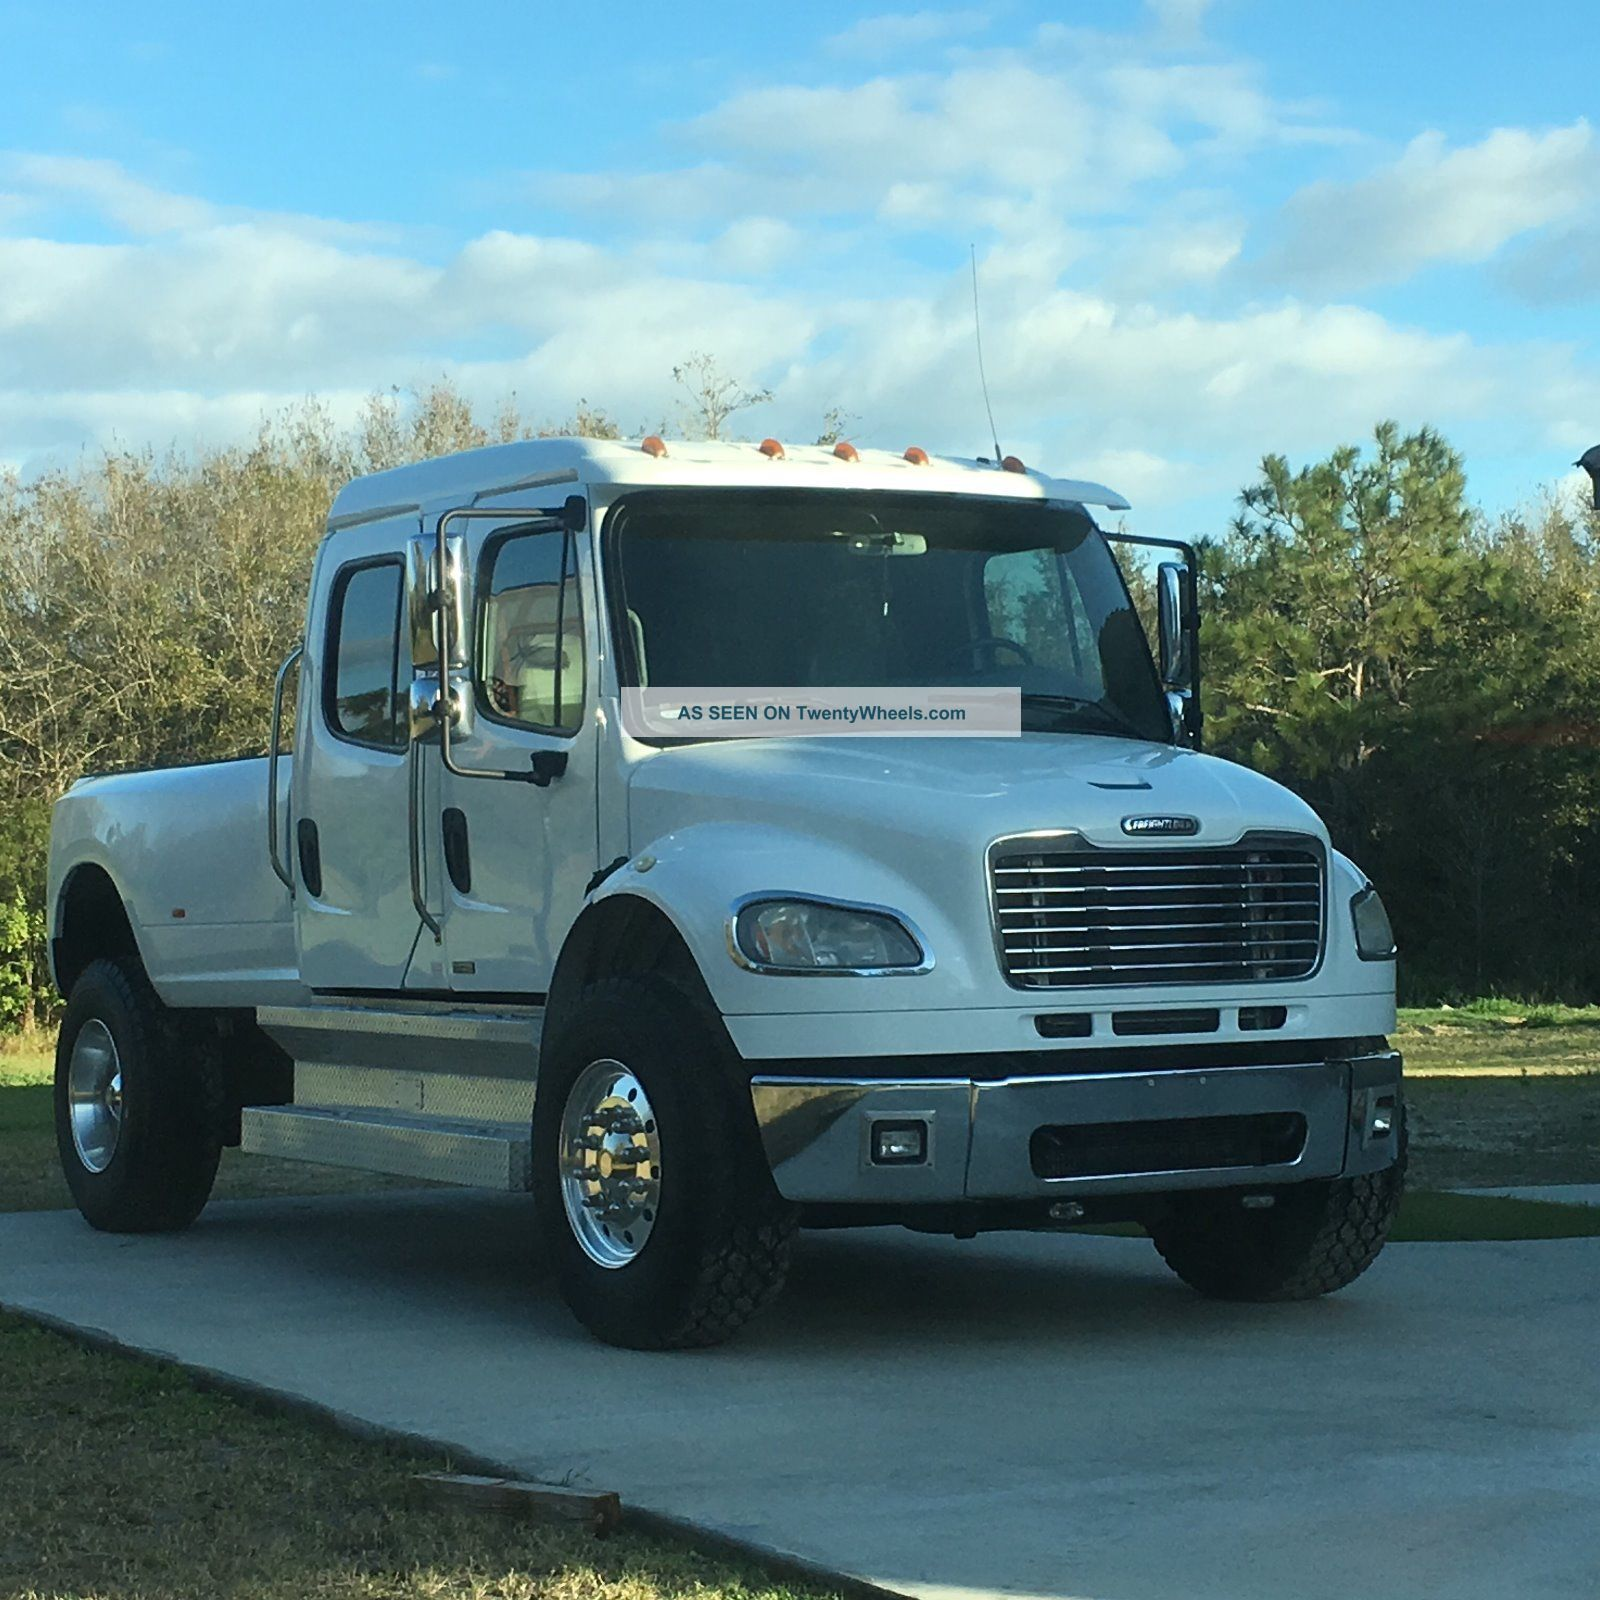 control trucks with 42216 2008 Freightliner Freightliner M2 106 Business Class on Jeep Fc 150 Forward Control 1957 in addition 1085704 new In Safety Ford Surveillance Mode Locks Car Doors When People Approach together with 2019 Vw Amarok besides 18256806 in addition Aurora 9 Inch Bonnie Honey Teddy Bear New.